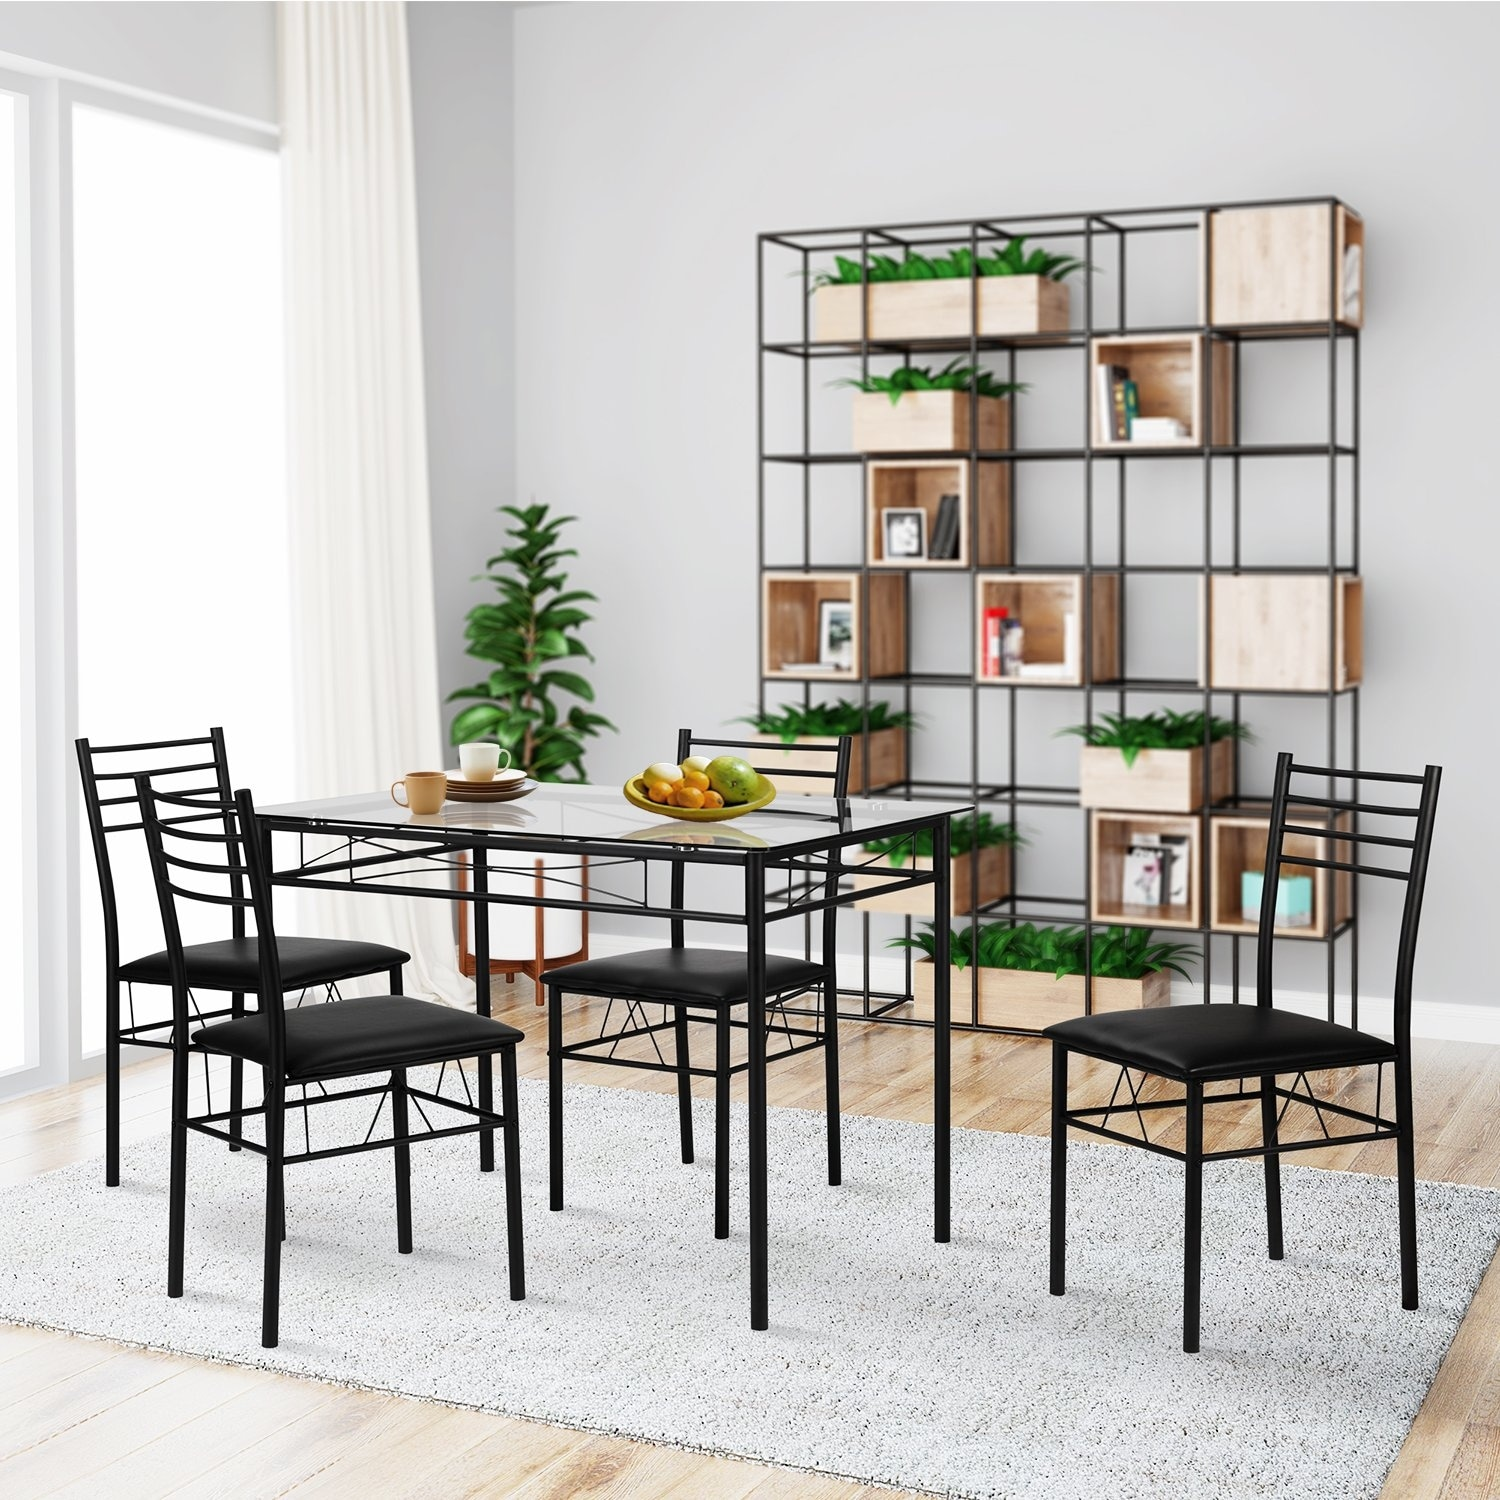 Prime Vecelo Dining Table Sets Glass Table With 4 Chairs Metal Kitchen Room Furniture 5 Pcs Download Free Architecture Designs Rallybritishbridgeorg